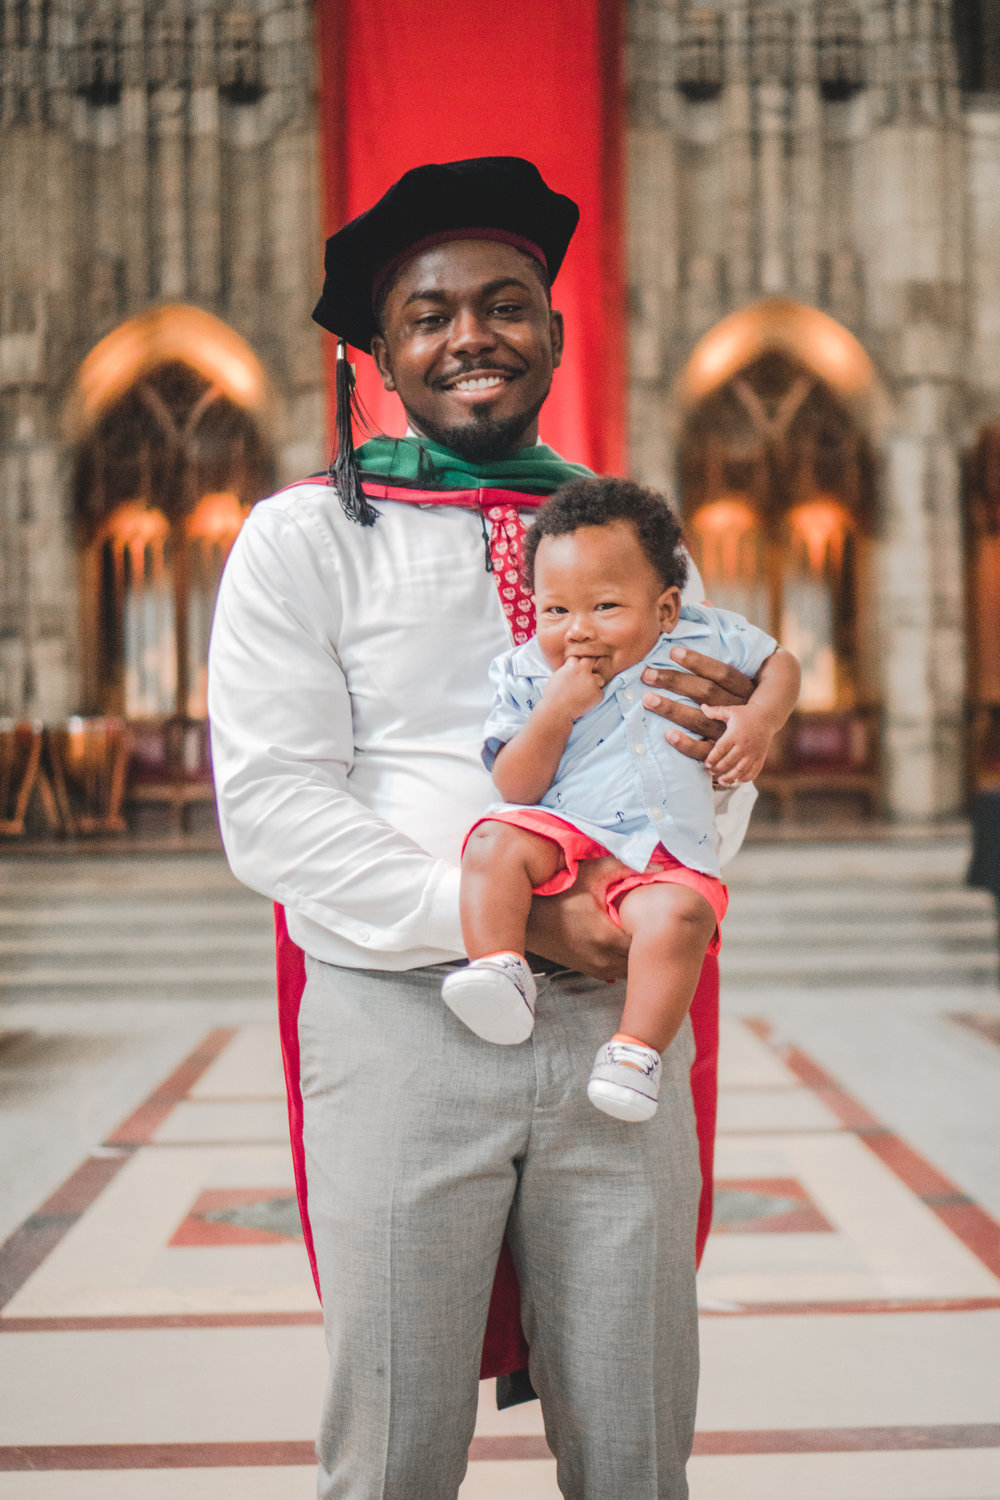 Jordan Green Graduation 5.25.18 - Datflipmel Photo & Films-43.jpg